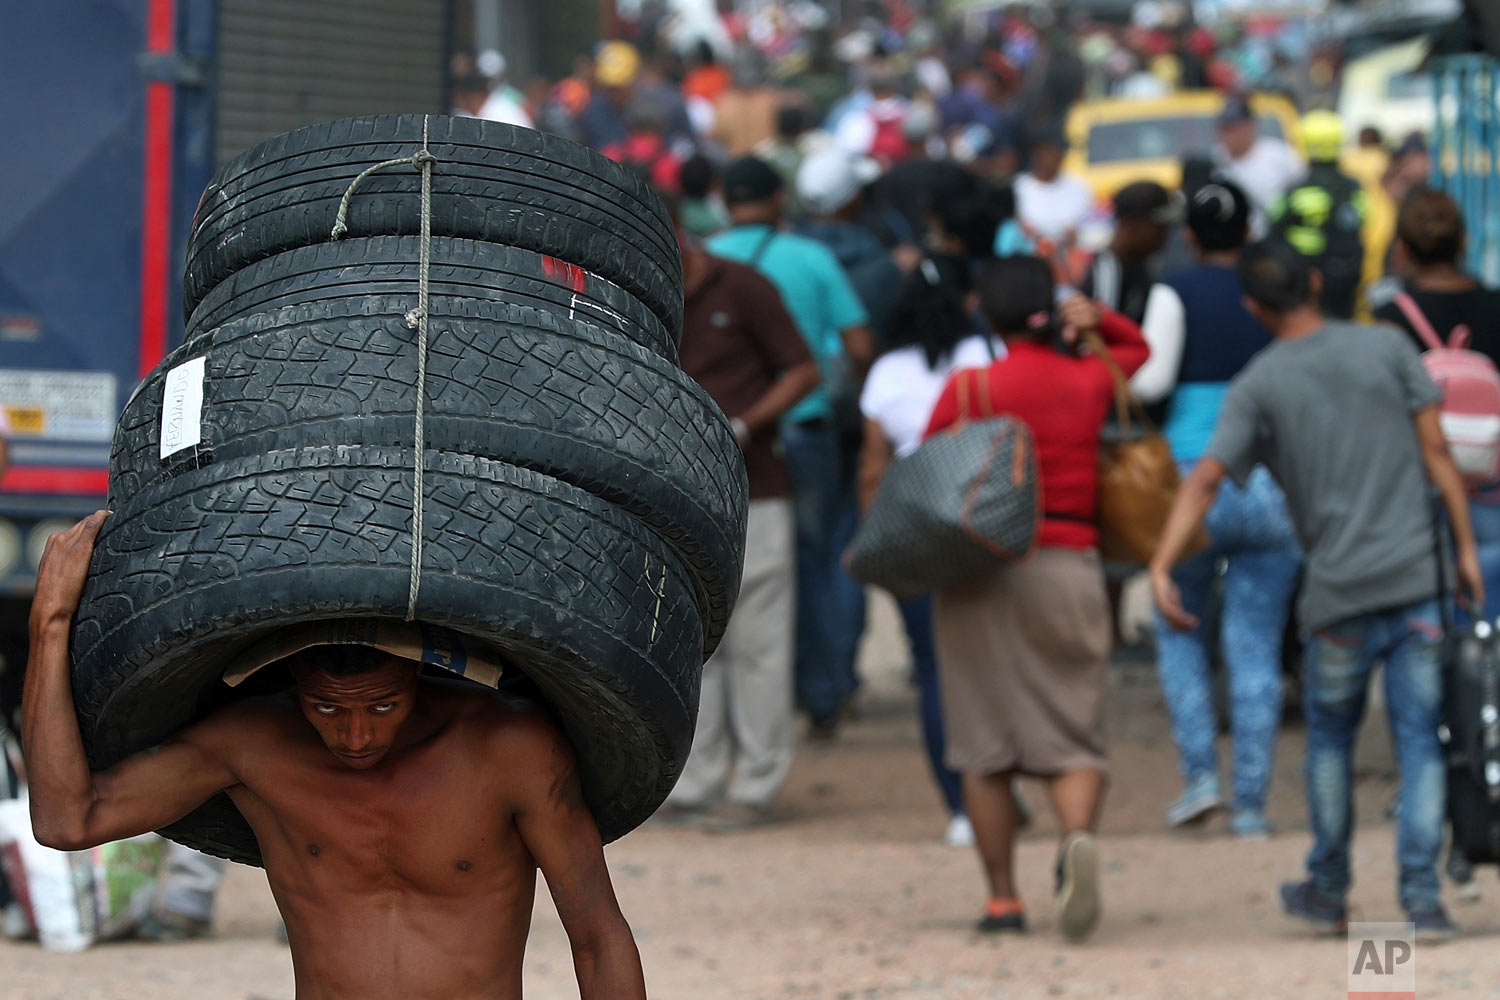 A man hauls used tires back to Venezuela, using a blind spot on the border near the closed Simon Bolivar International Bridge, in La Parada, Colombia, Feb. 28, 2019. (AP Photo/Martin Mejia)